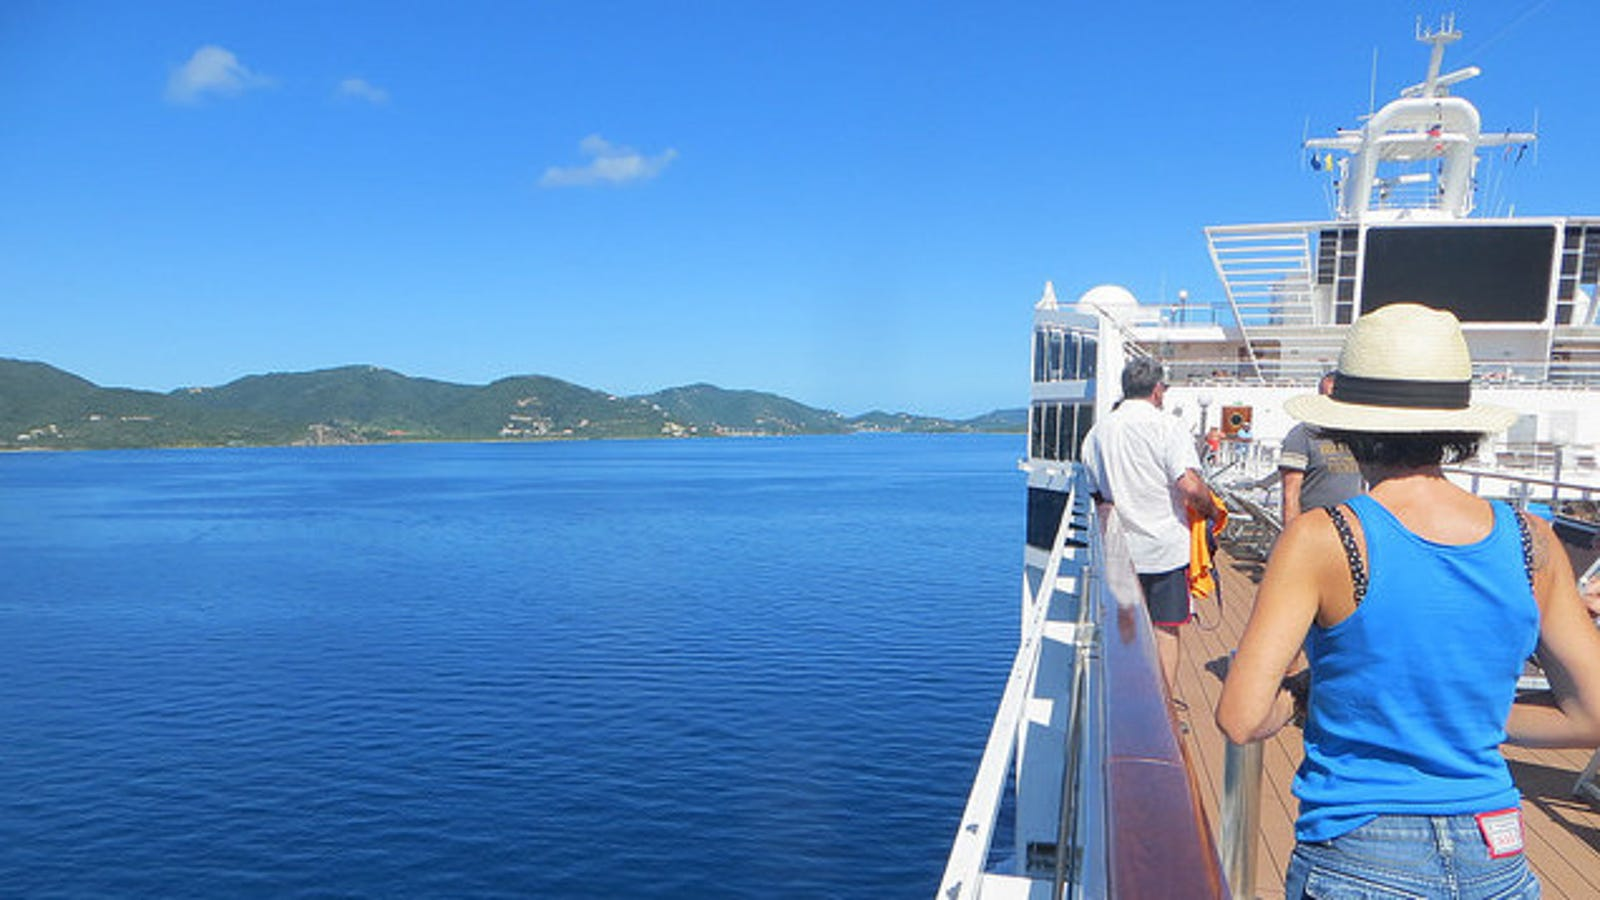 Book A Quot Repositioning Cruise Quot To Save Money On Your Vacation